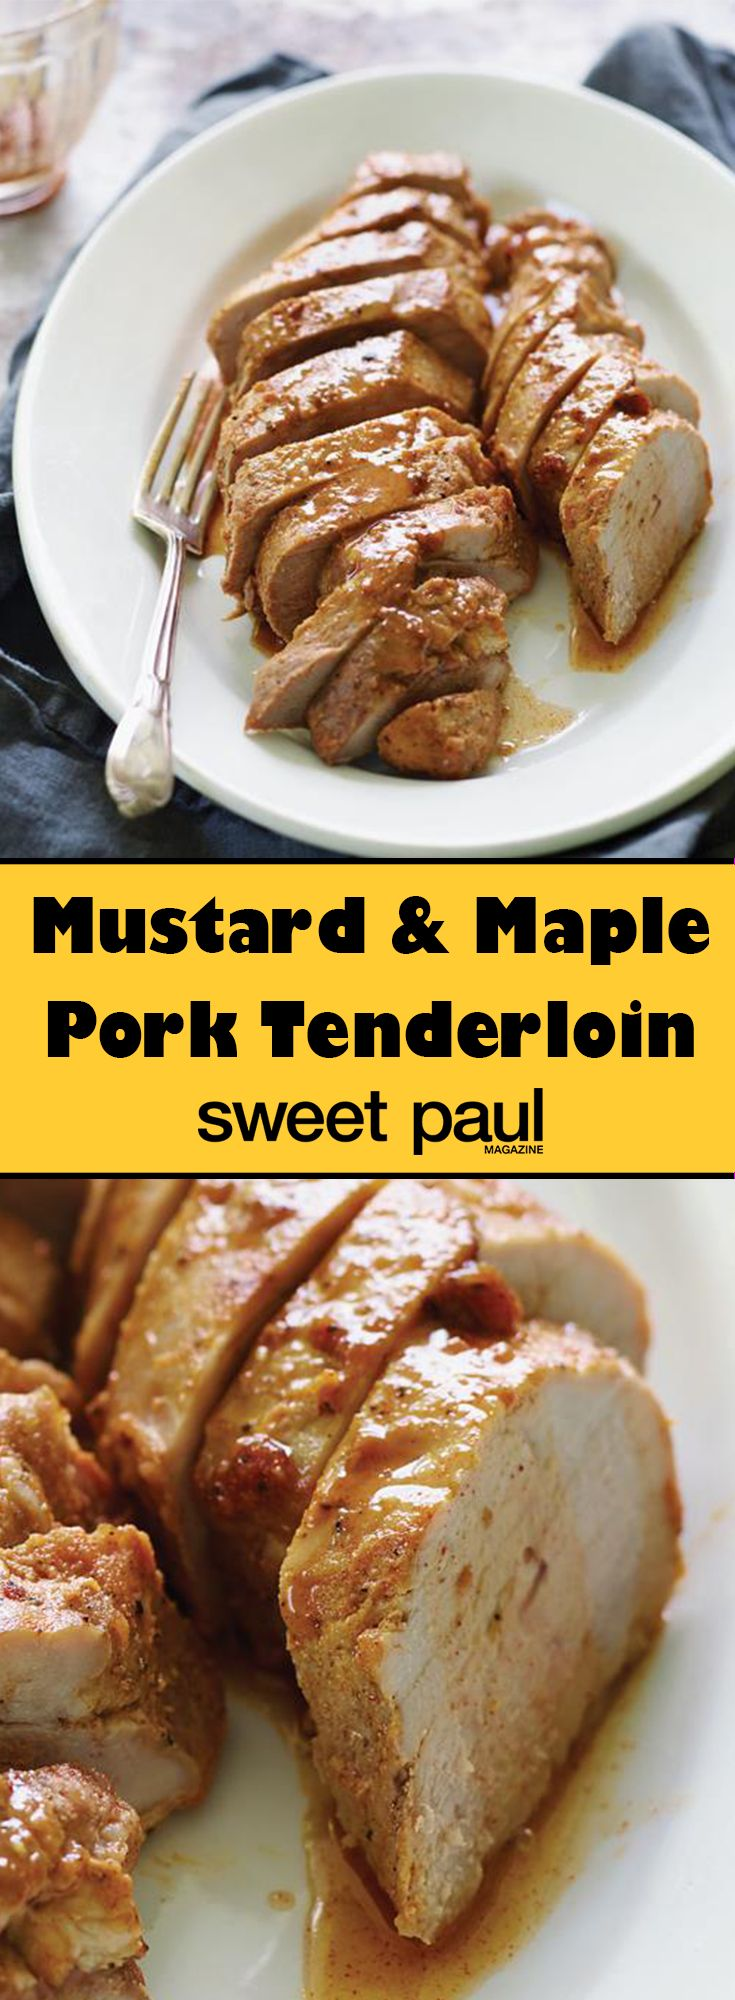 This delicious, slightly sweet and sticky pork tenderloin could not be simpler to make.